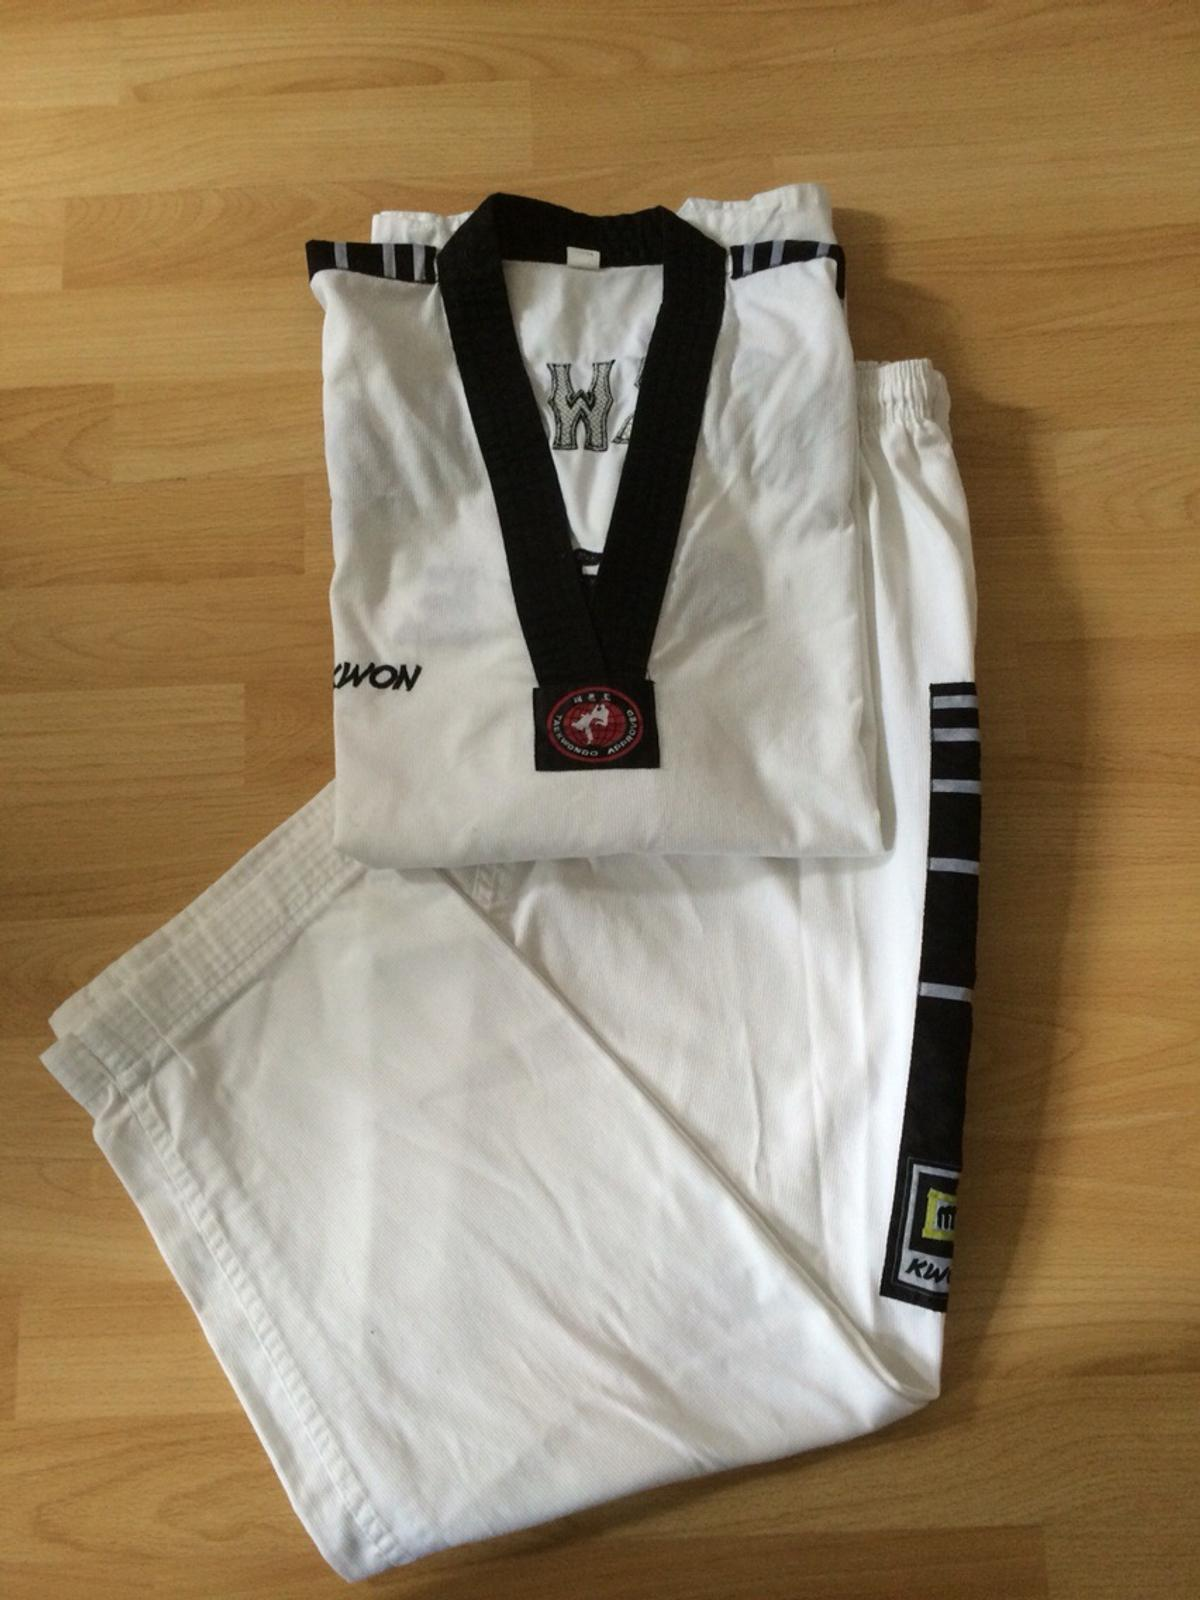 Taekwondo Anzug Gr. 170 in 44623 Herne for €30.00 for sale